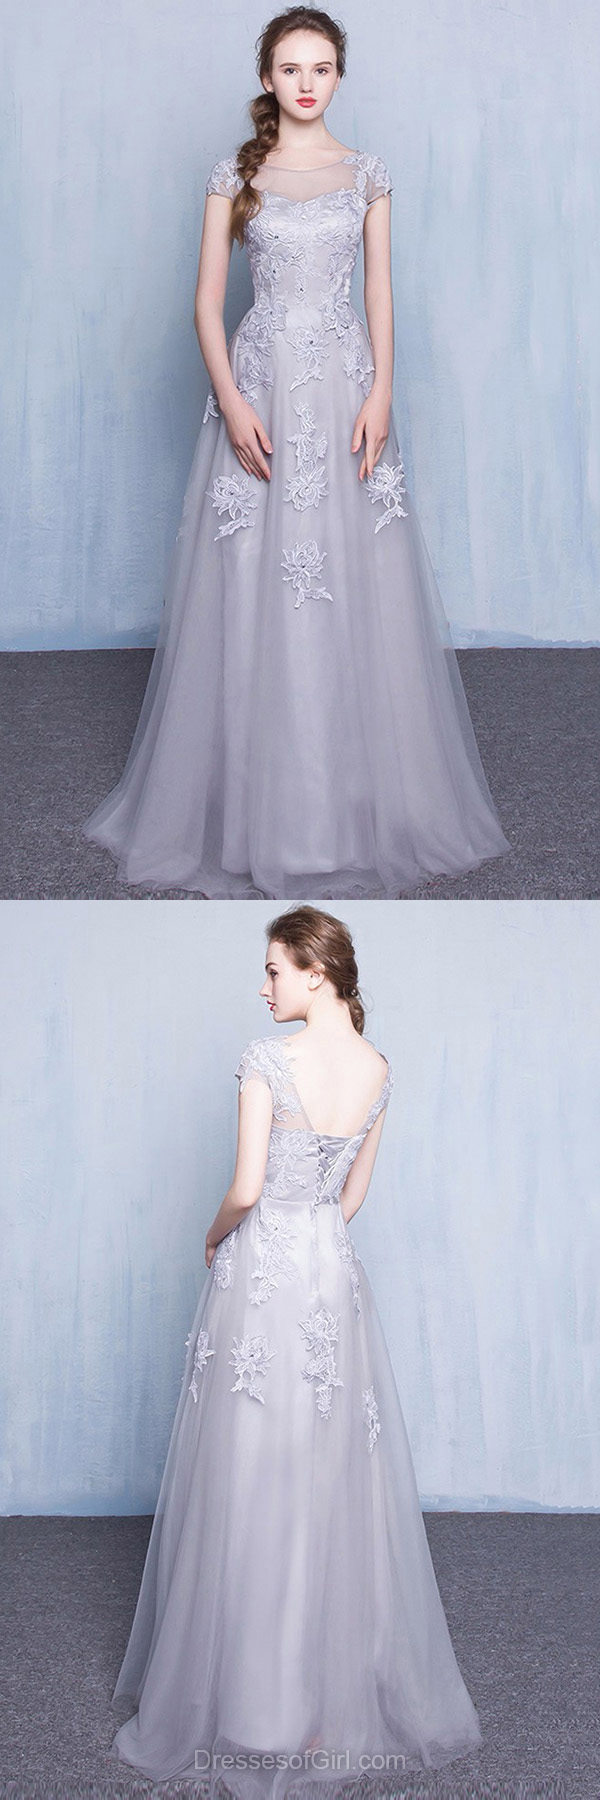 Princess prom dress long prom dresses tulle evening gowns low